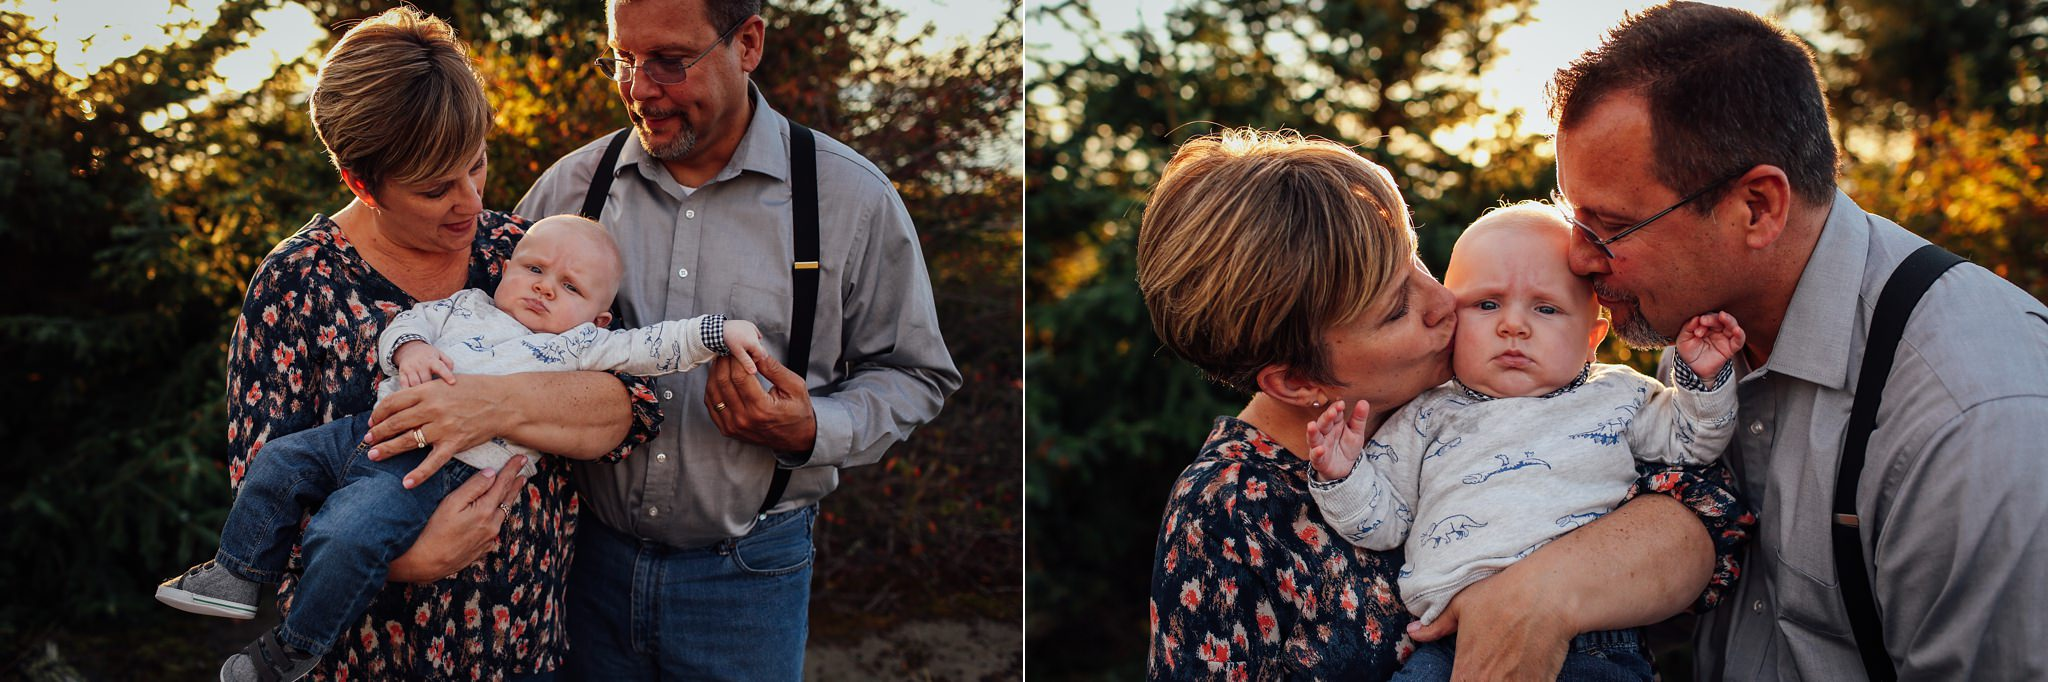 Whidbey-Island-Family-Photographer-Kara-Chappell-Photography_1373.jpg